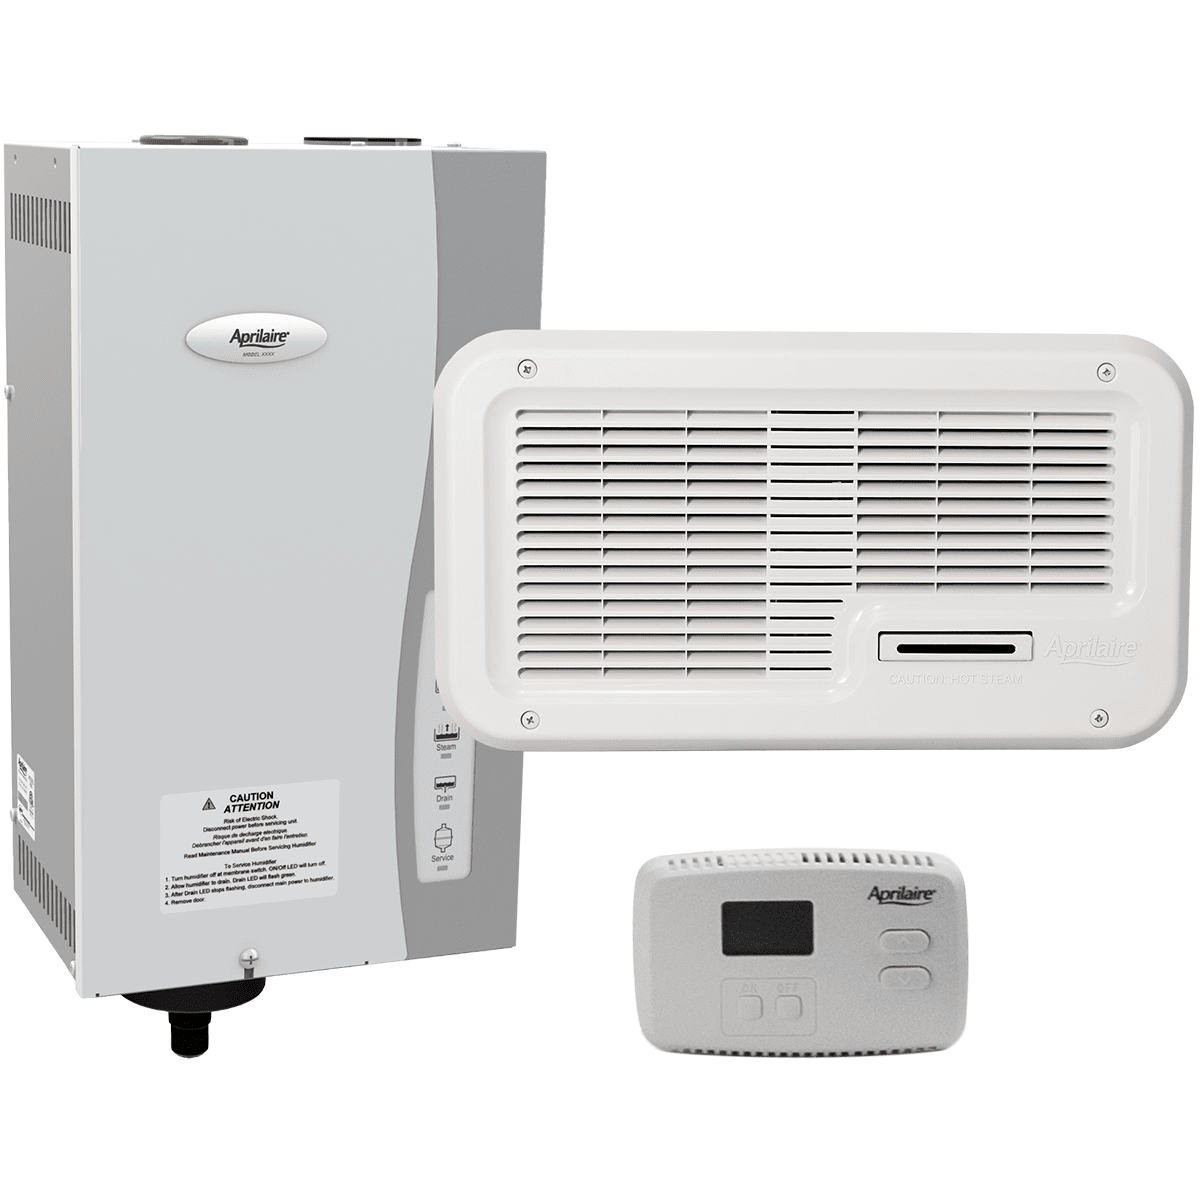 Image of Aprilaire Model 865 Ductless Steam Humidifier Package